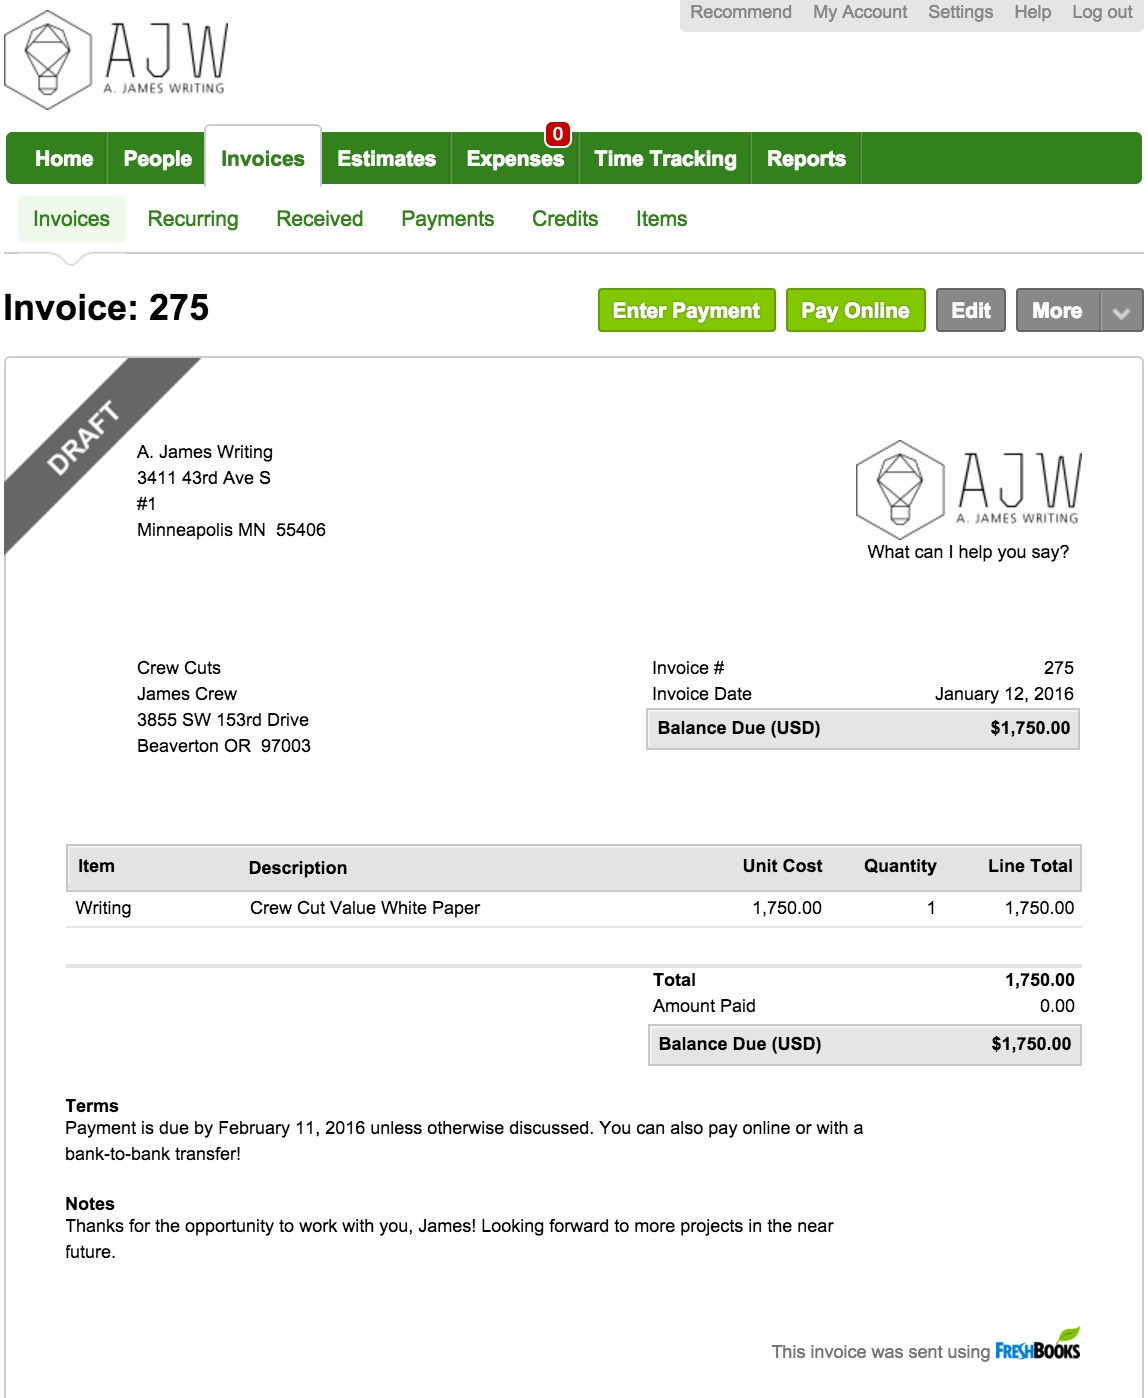 Opportunitycaus  Stunning What A Freelance Invoice Looks Like With Engaging Freshbooks Invoice Example With Alluring How To Create An Invoice In Quickbooks Also Over Invoicing And Under Invoicing In Addition Personal Invoice And Outstanding Invoice Definition As Well As Film Invoice Template Additionally Handyman Invoice From Portlandcopywriterscom With Opportunitycaus  Engaging What A Freelance Invoice Looks Like With Alluring Freshbooks Invoice Example And Stunning How To Create An Invoice In Quickbooks Also Over Invoicing And Under Invoicing In Addition Personal Invoice From Portlandcopywriterscom